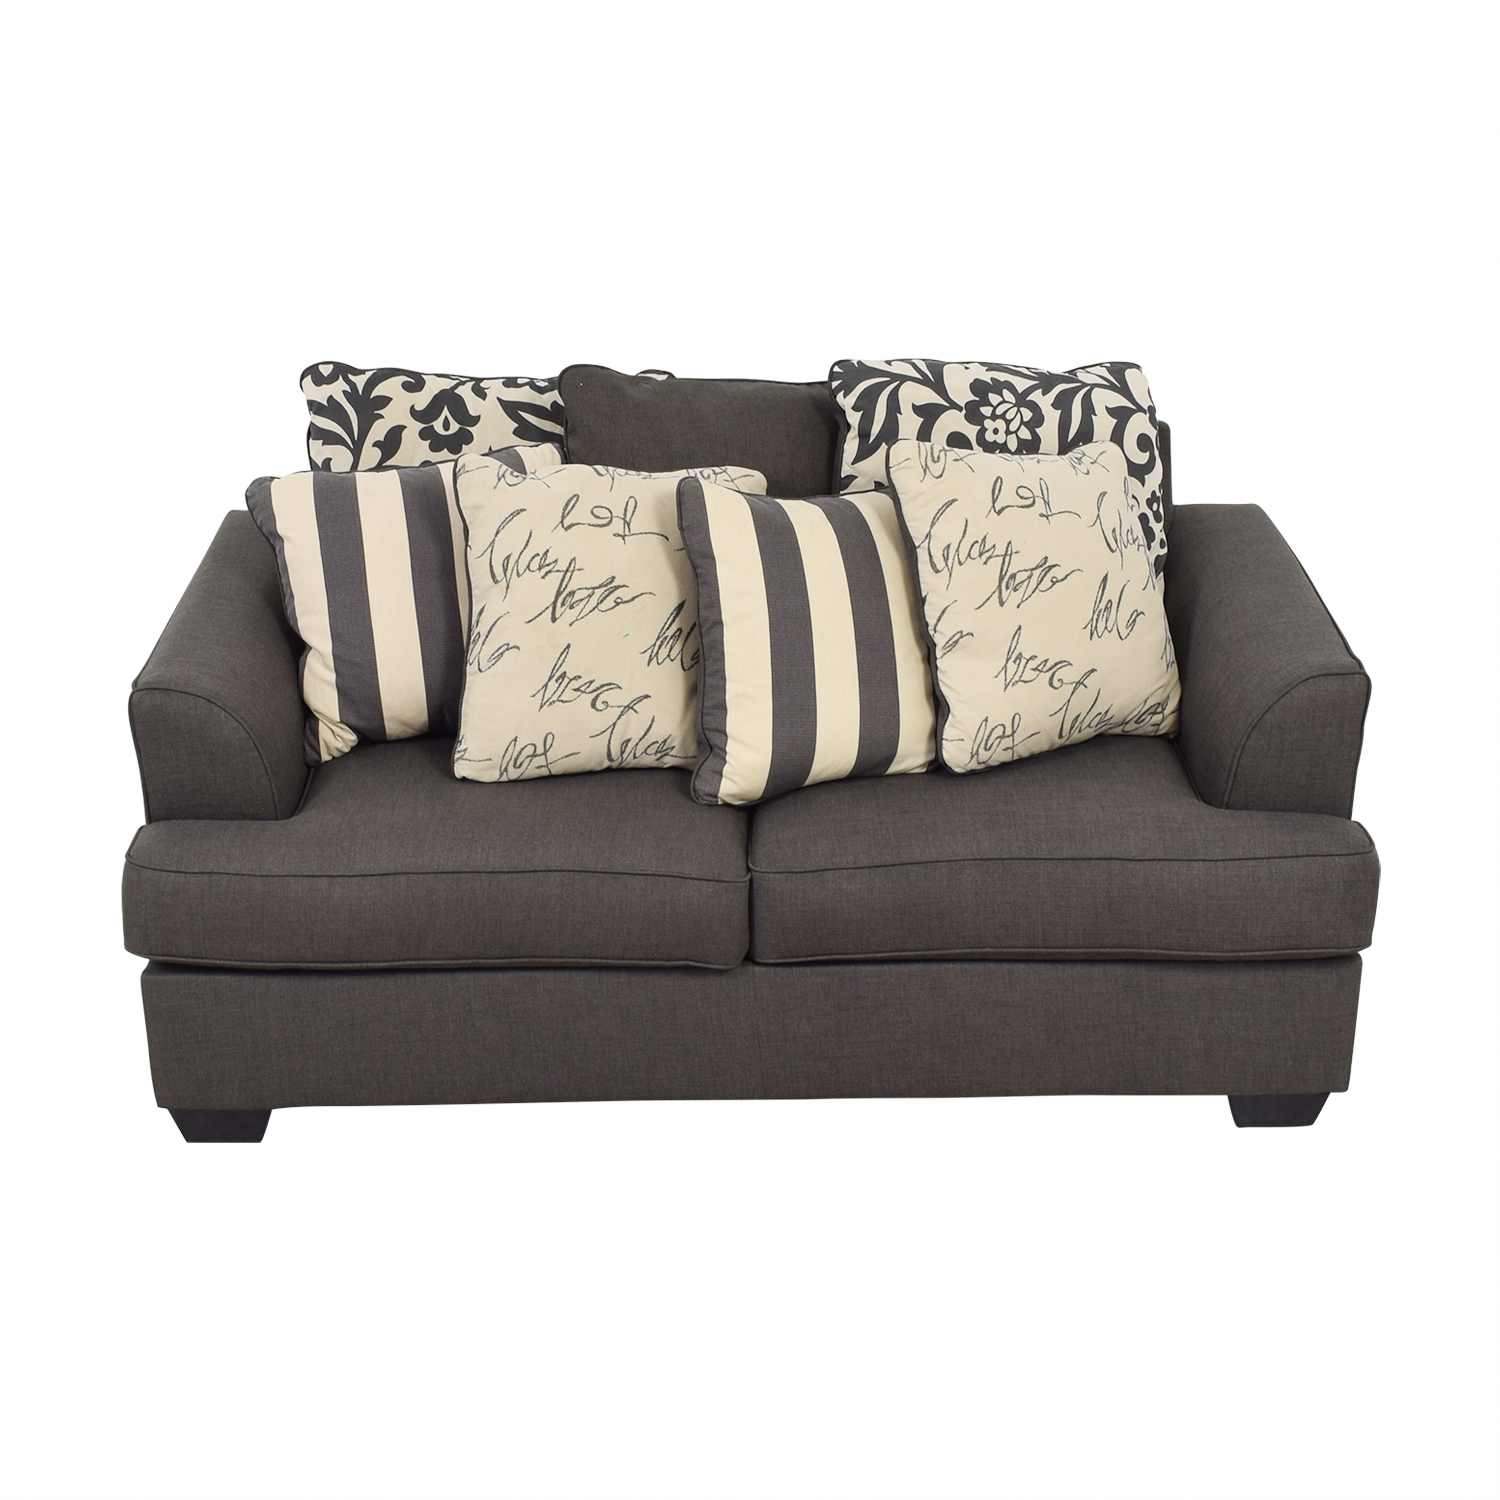 Super 90 Off Ashley Furniture Ashley Furniture Levon Loveseat Sofas Beutiful Home Inspiration Cosmmahrainfo